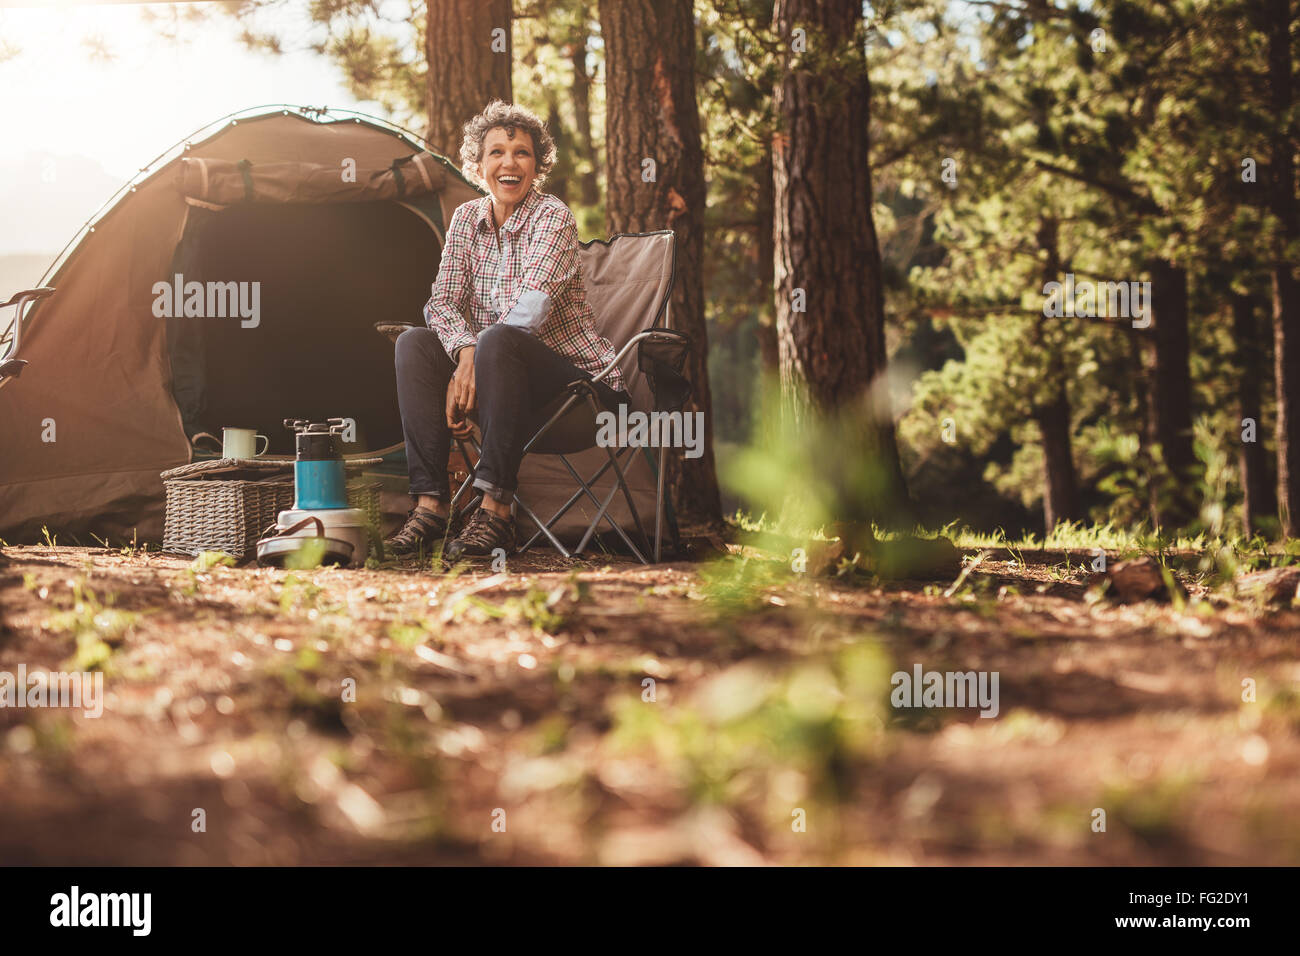 Senior woman sitting relaxed outside a tent. Smiling mature woman camping in forest. - Stock Image